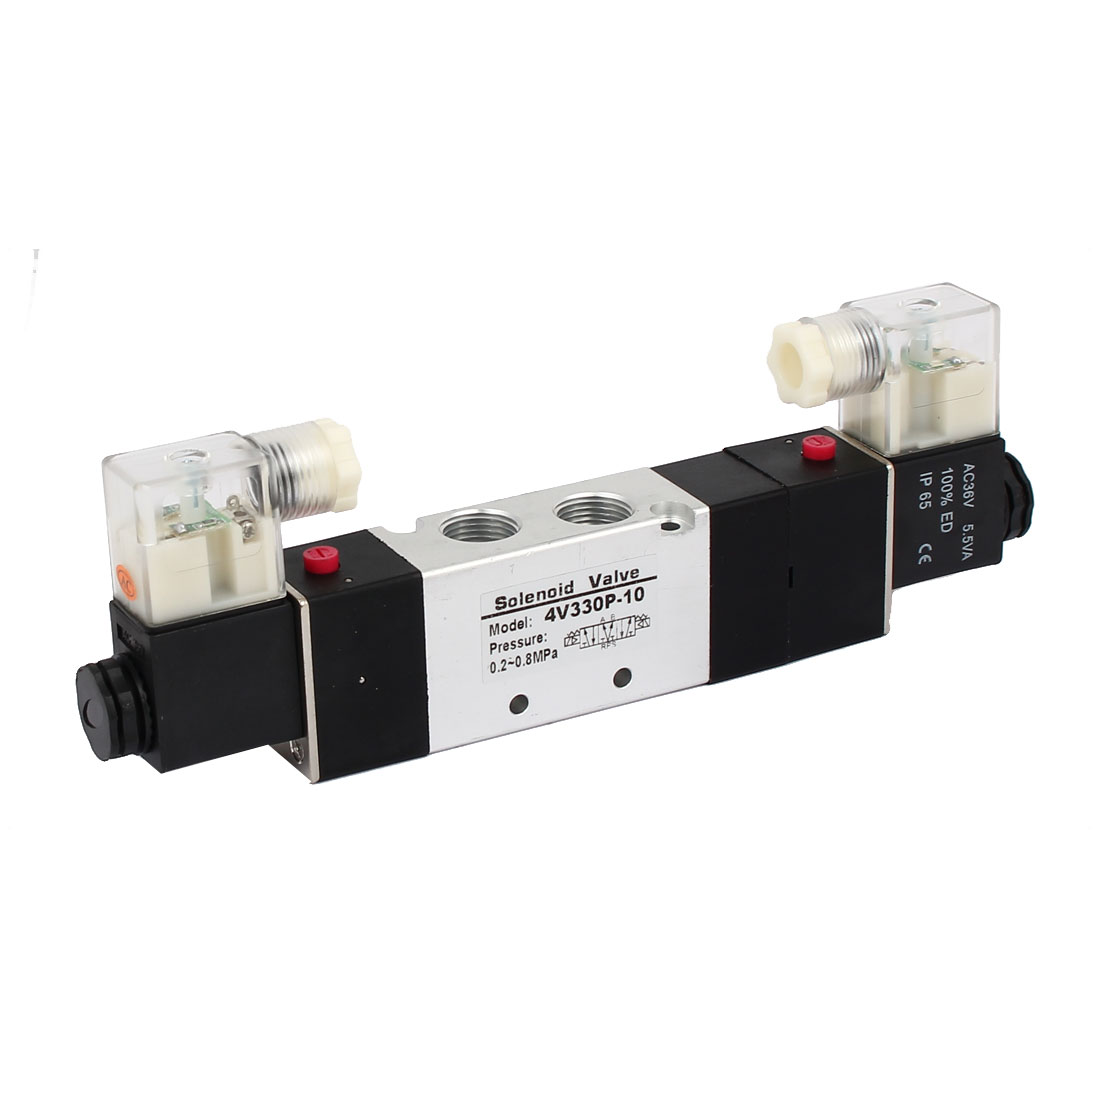 AC 36V 3 Position 5 Way Double Head Pneumatic Solenoid Air Valve 4V330P-10